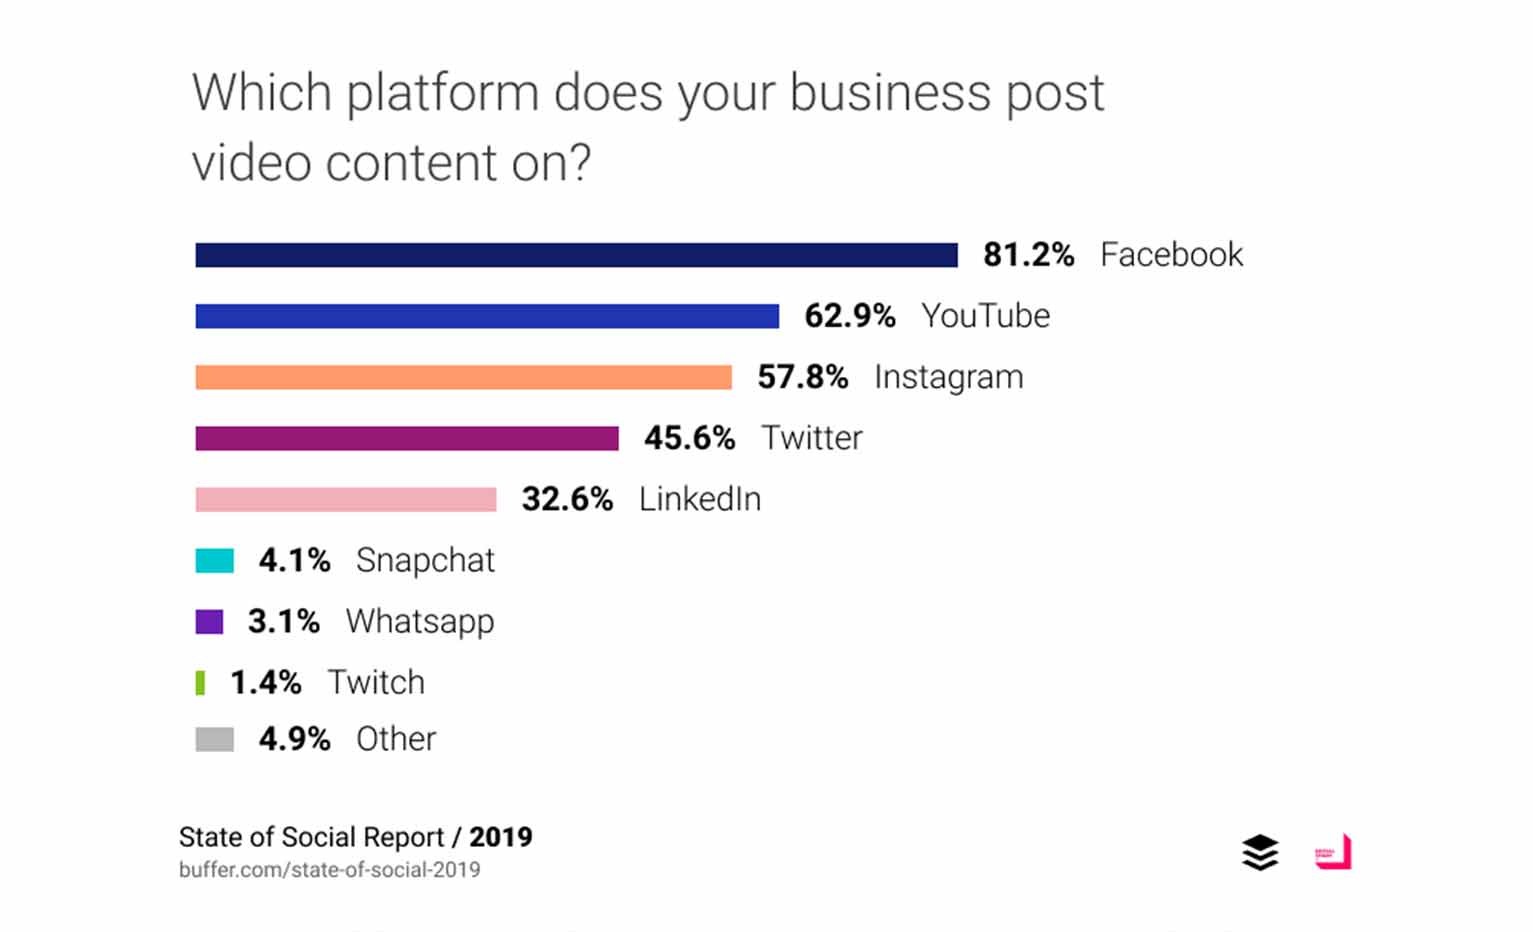 Bar graph with a percentage breakdown of the most popular platforms for posting video content. Facebook topped it at 81.2%.